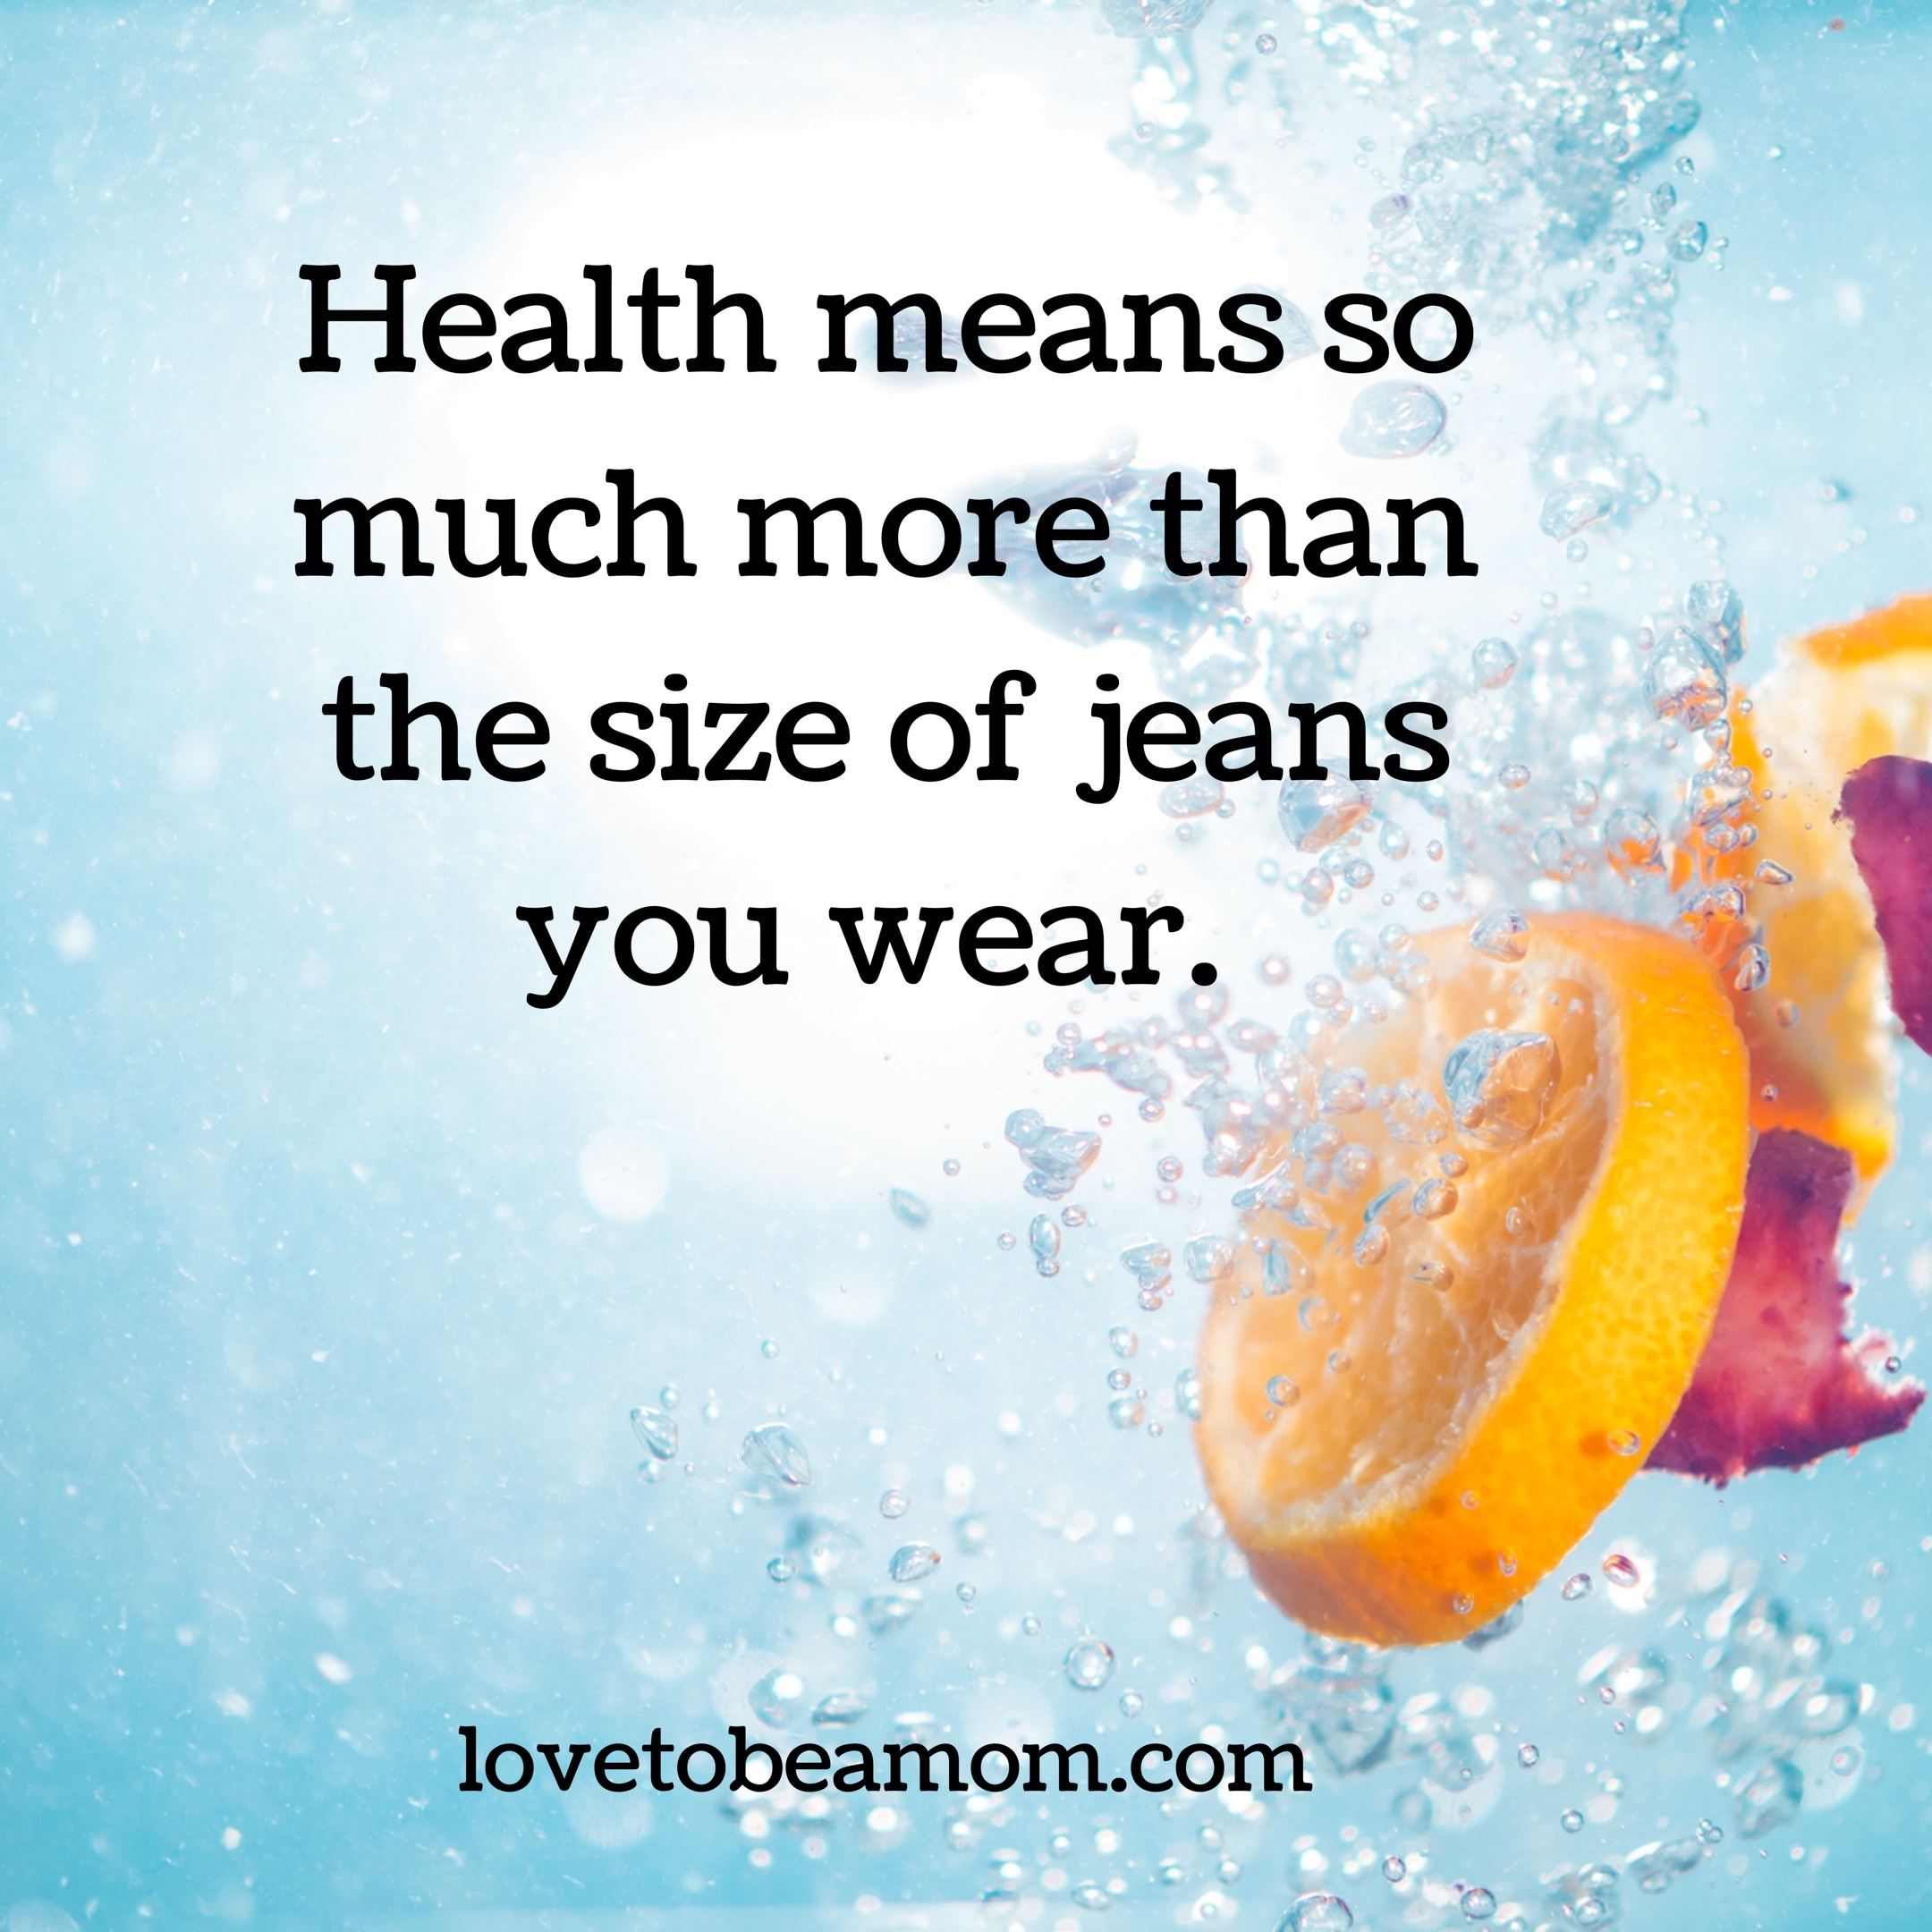 Health means so much more than the size of jeans you wear.